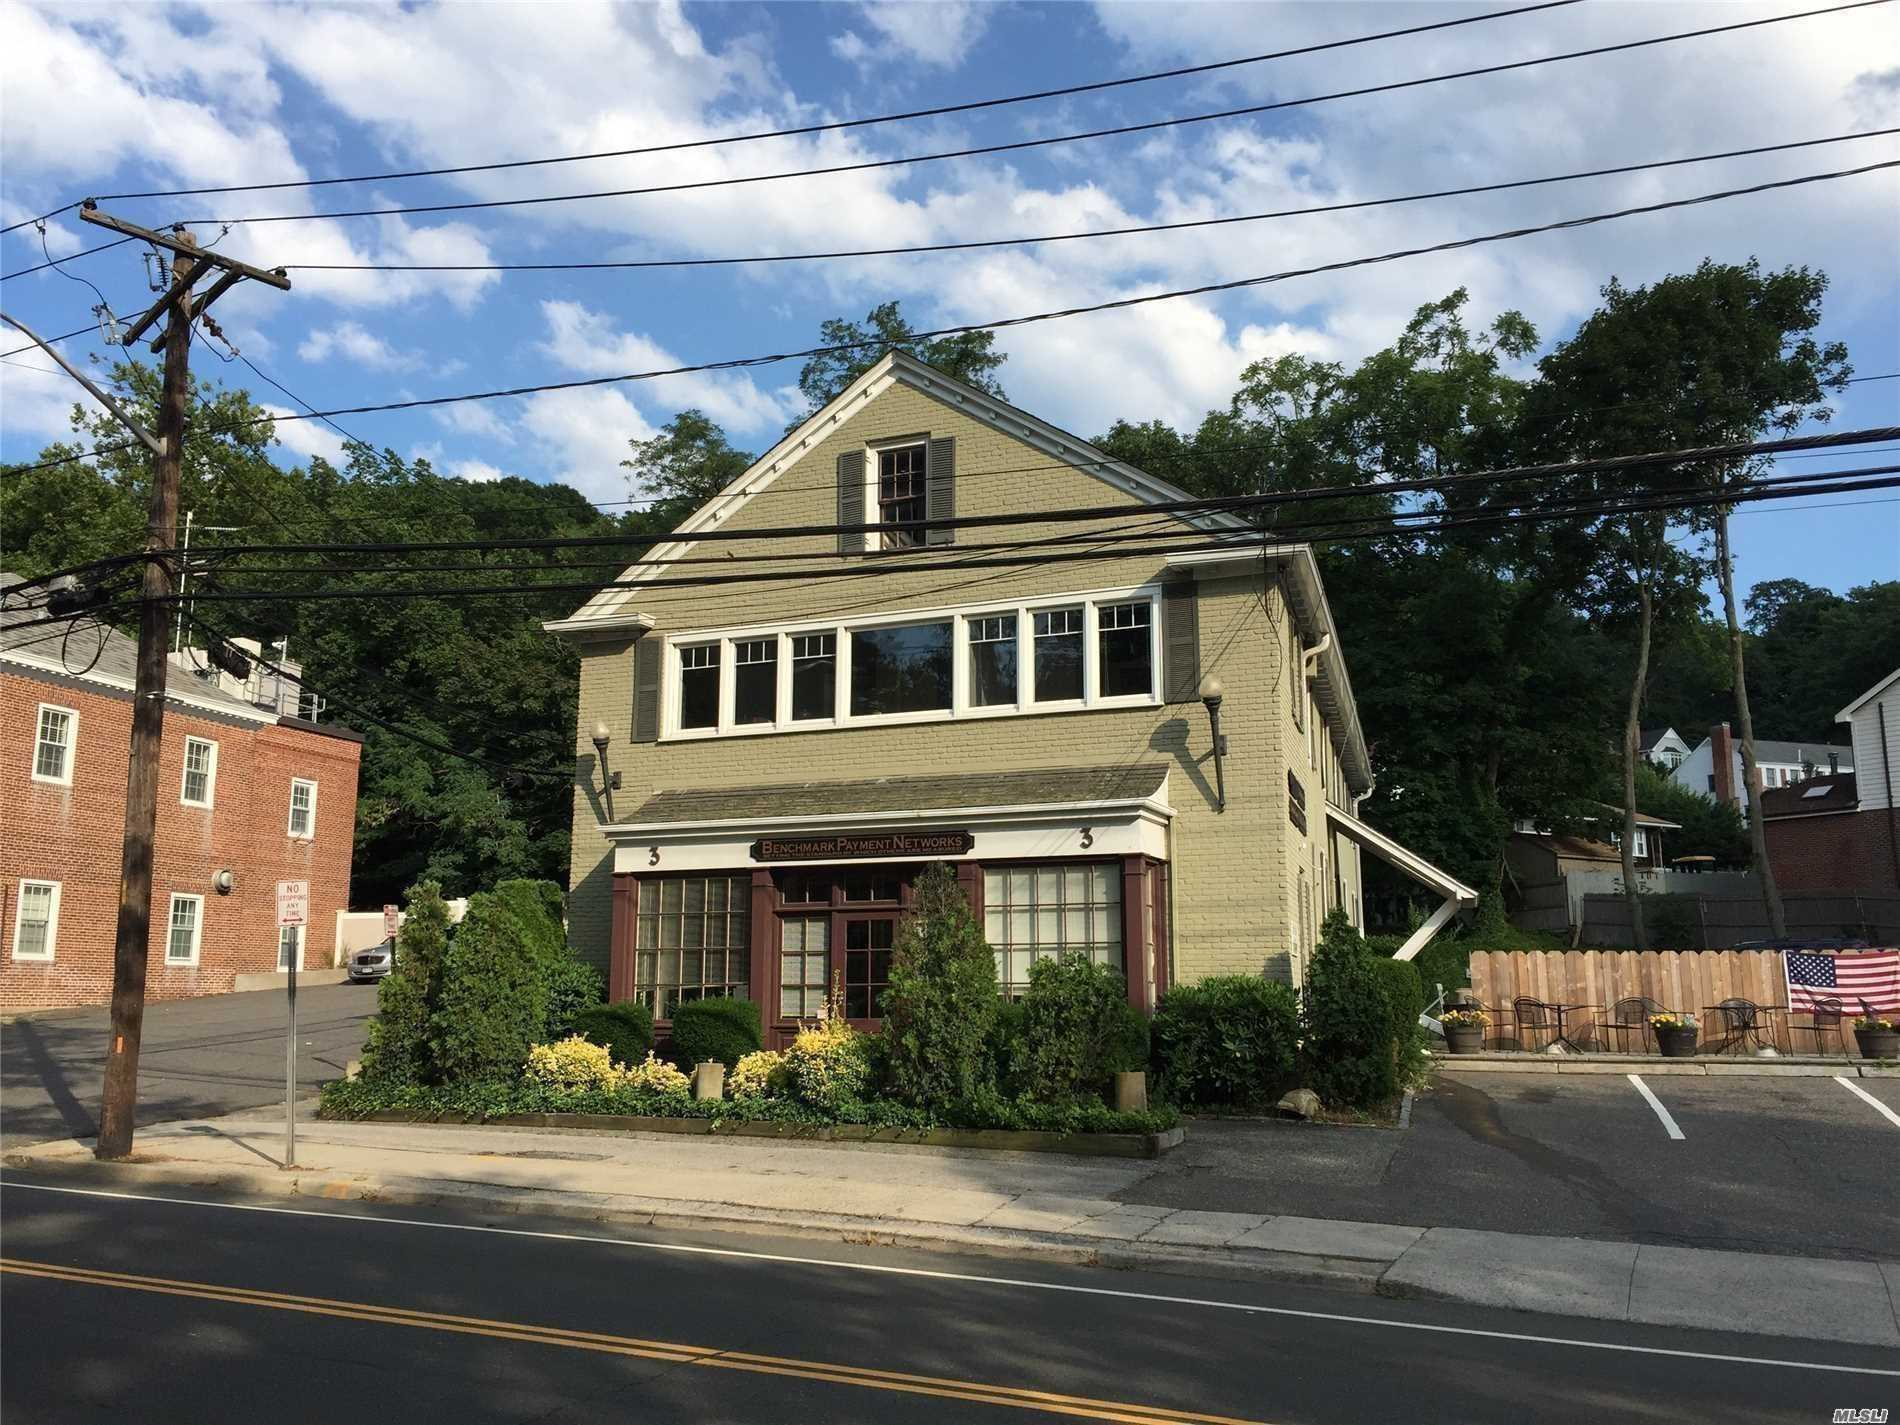 Acquisto commerciale in 3 Harbor Rd, Cold Spring Hrbr, NY ,11724